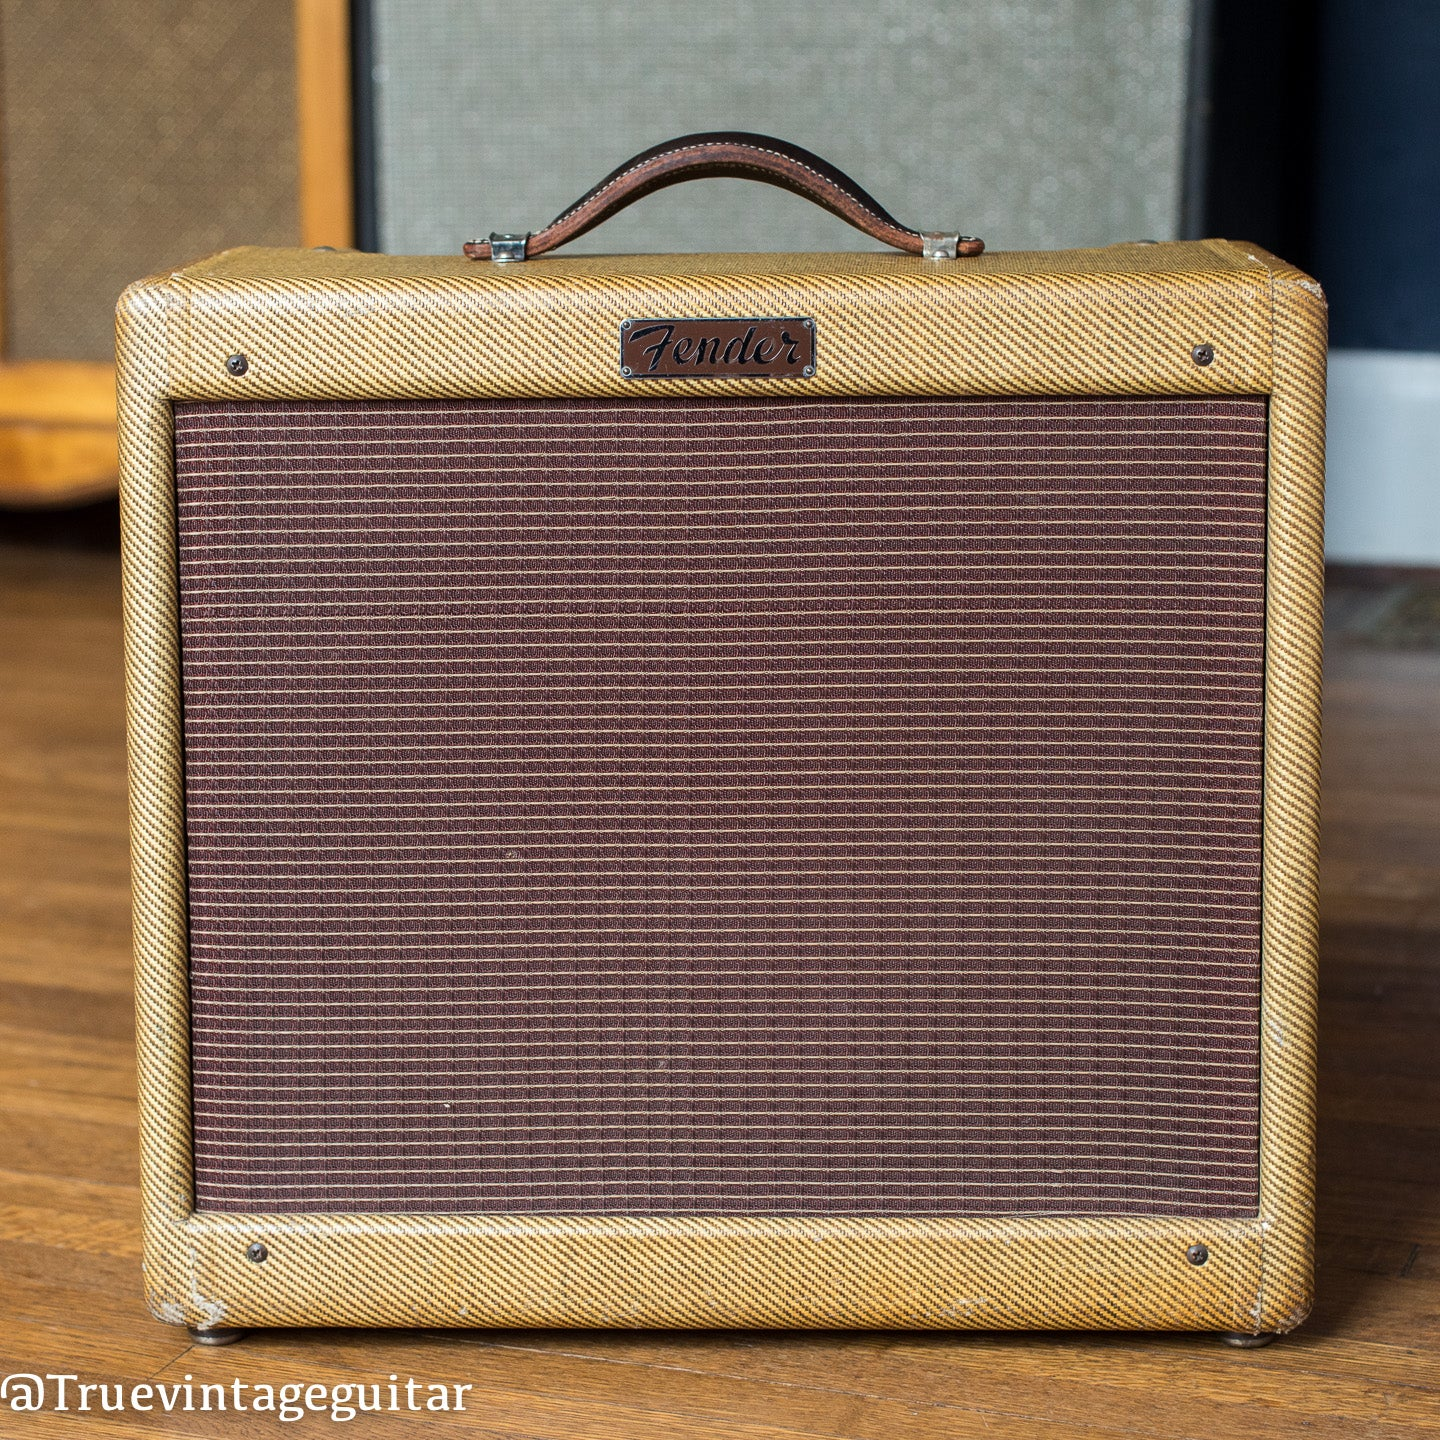 Vintage 1955 Fender Deluxe guitar amp tweed